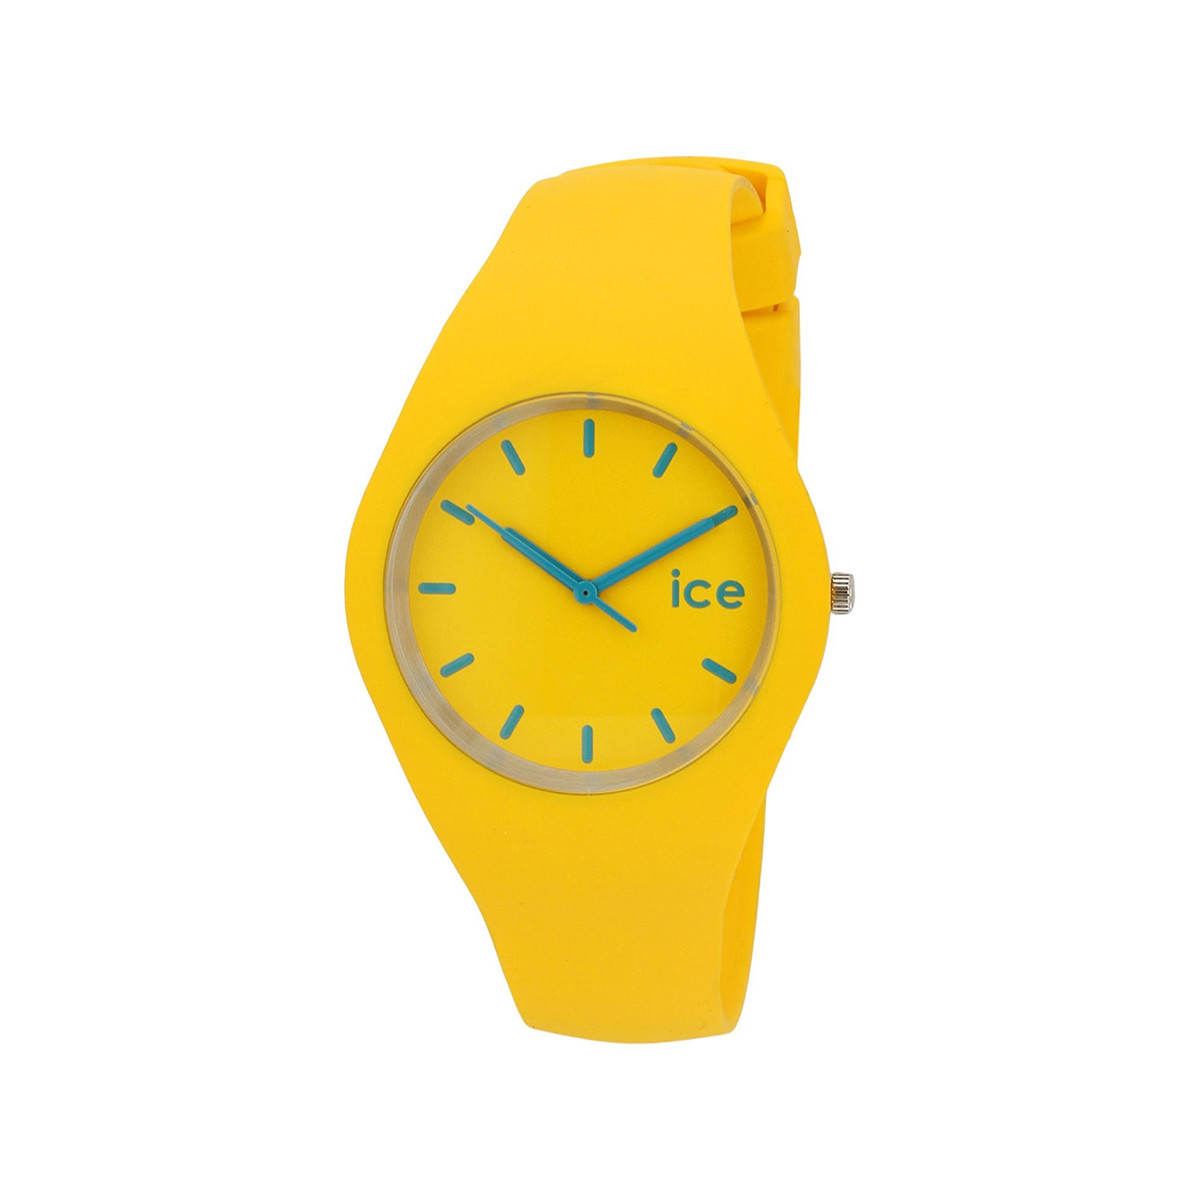 Montre Ice Watch mixte silicone jaune